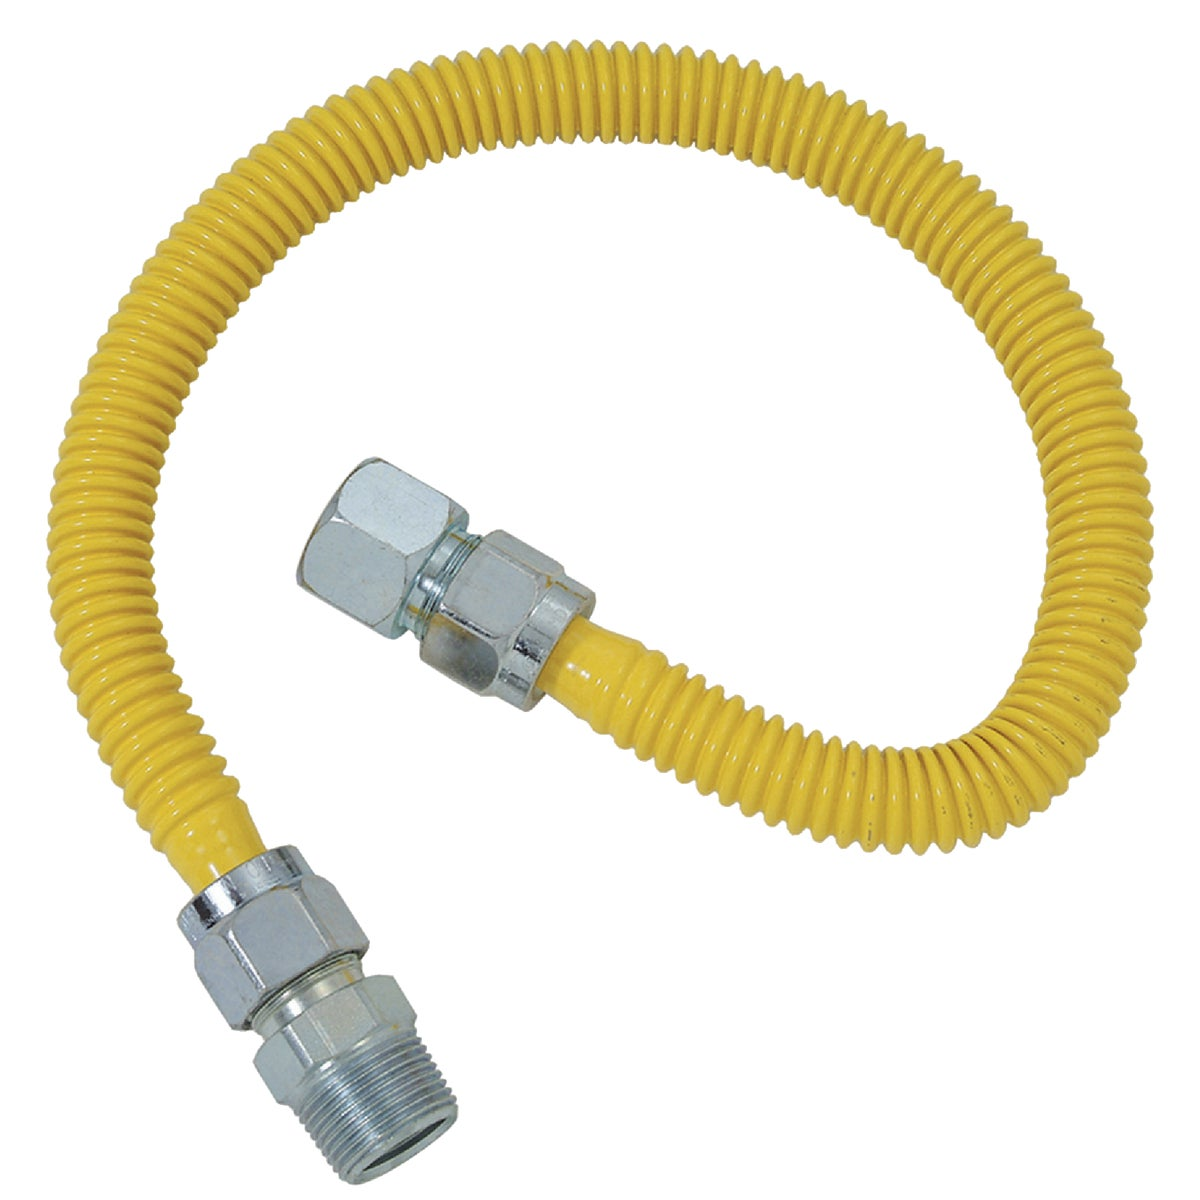 5/8X36 GAS CONNECTOR